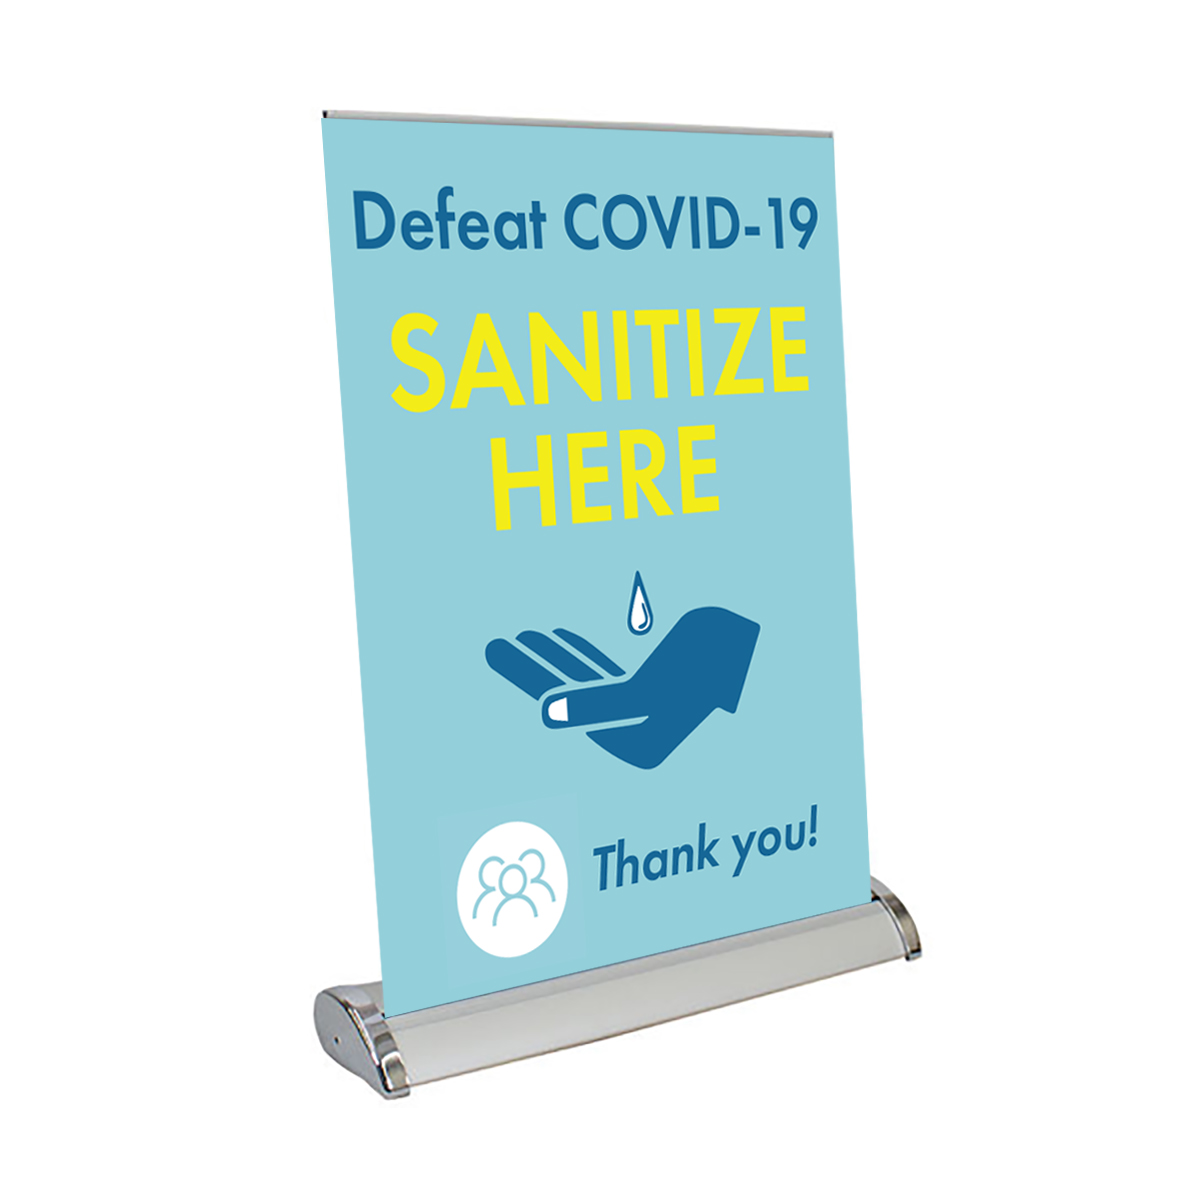 "Defeat COVID-19 - 13"" x 17"" Table Top Mini Retractable Banner"